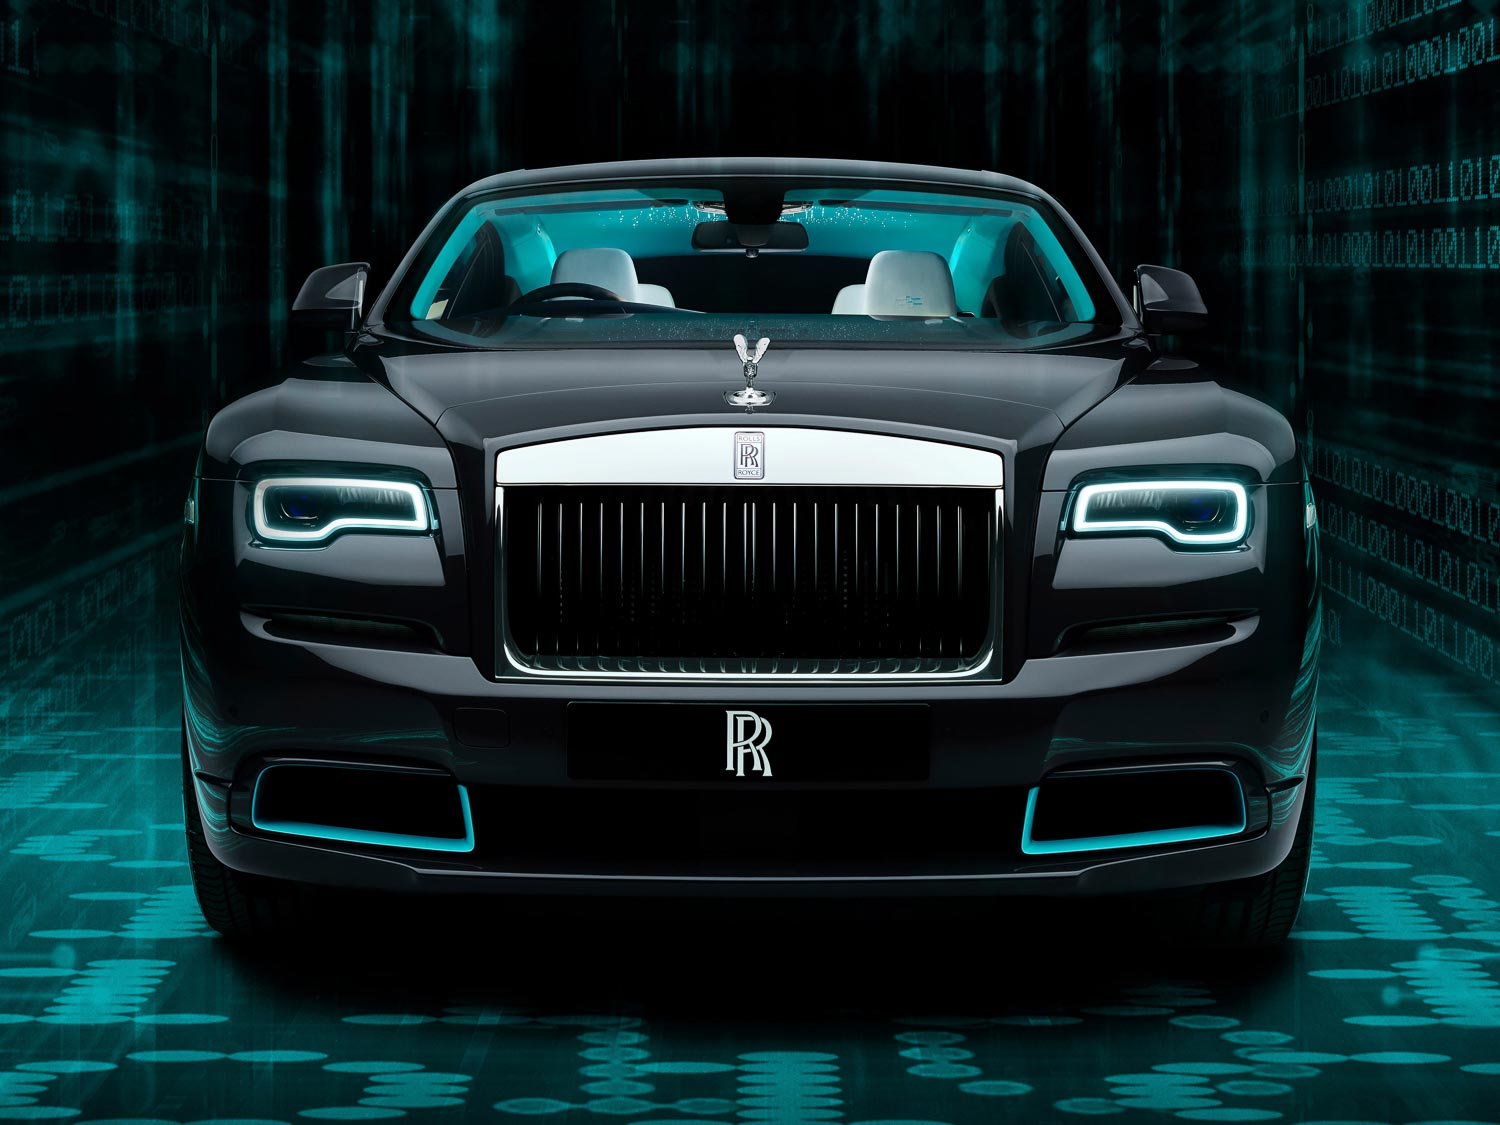 Rolls Royce Wraith Kryptos Debuts In Tvc Video Has Coded Secret Messages